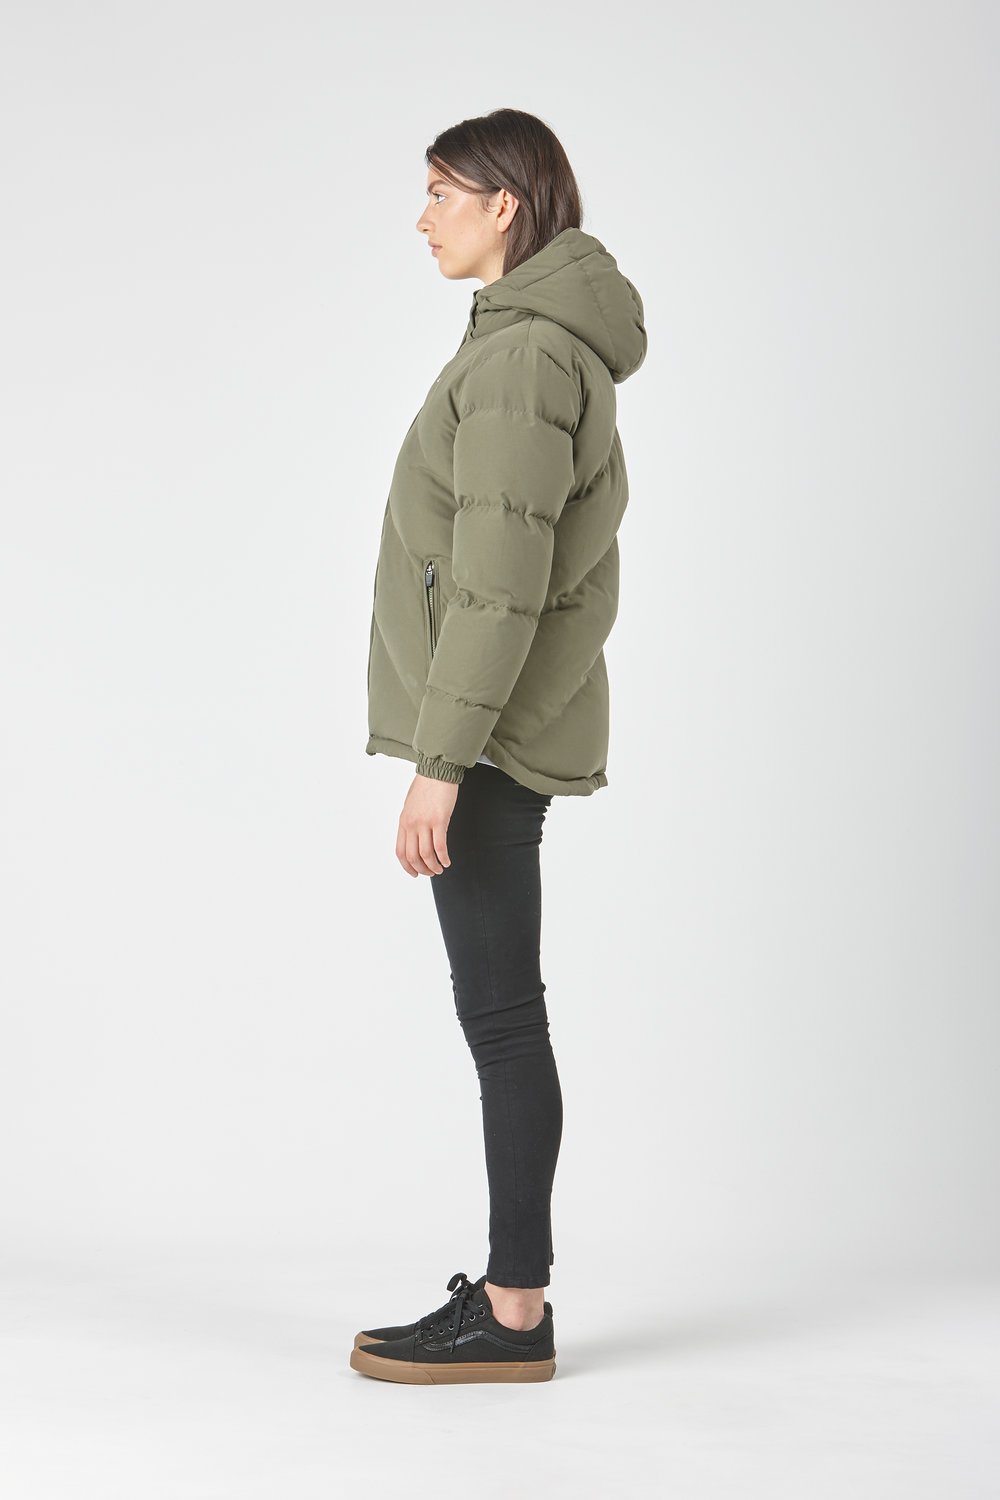 Huffer_OW-17_W-Classic-Down-Jacket_Olive-02.jpg